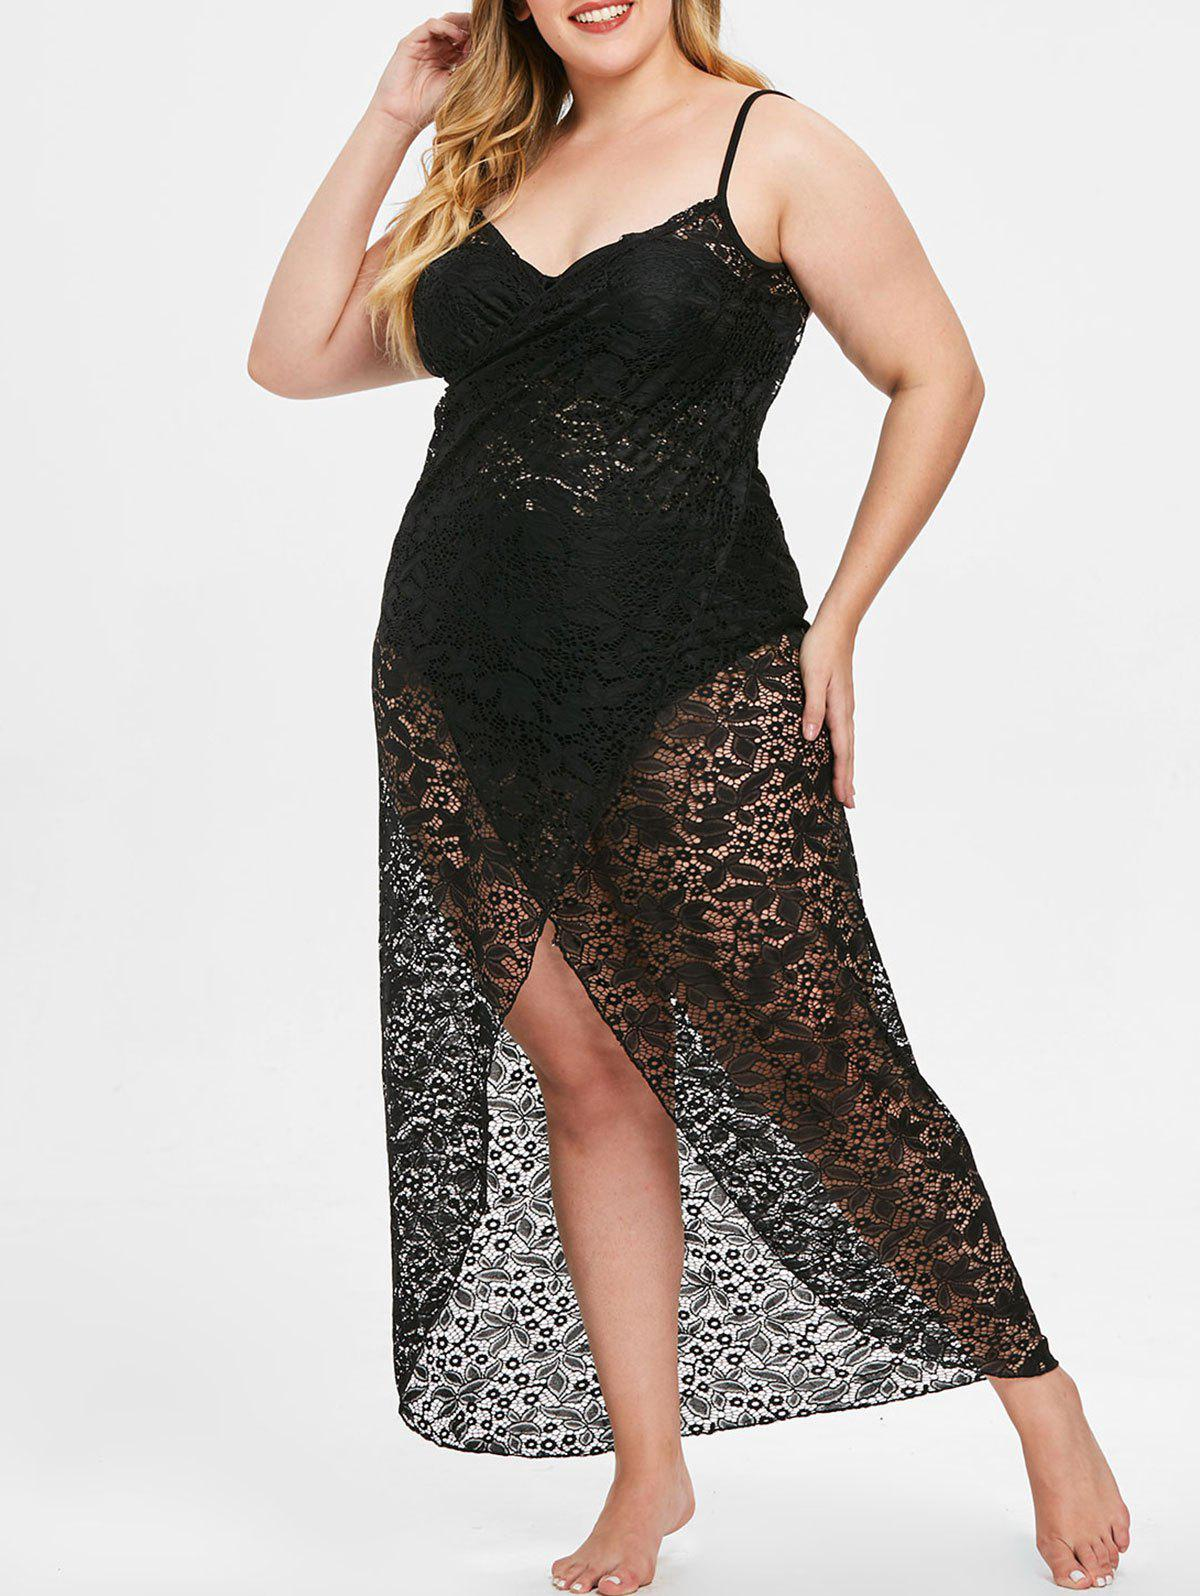 Plus Size Spaghetti Strap Lace Cover Up Dress - BLACK 1X